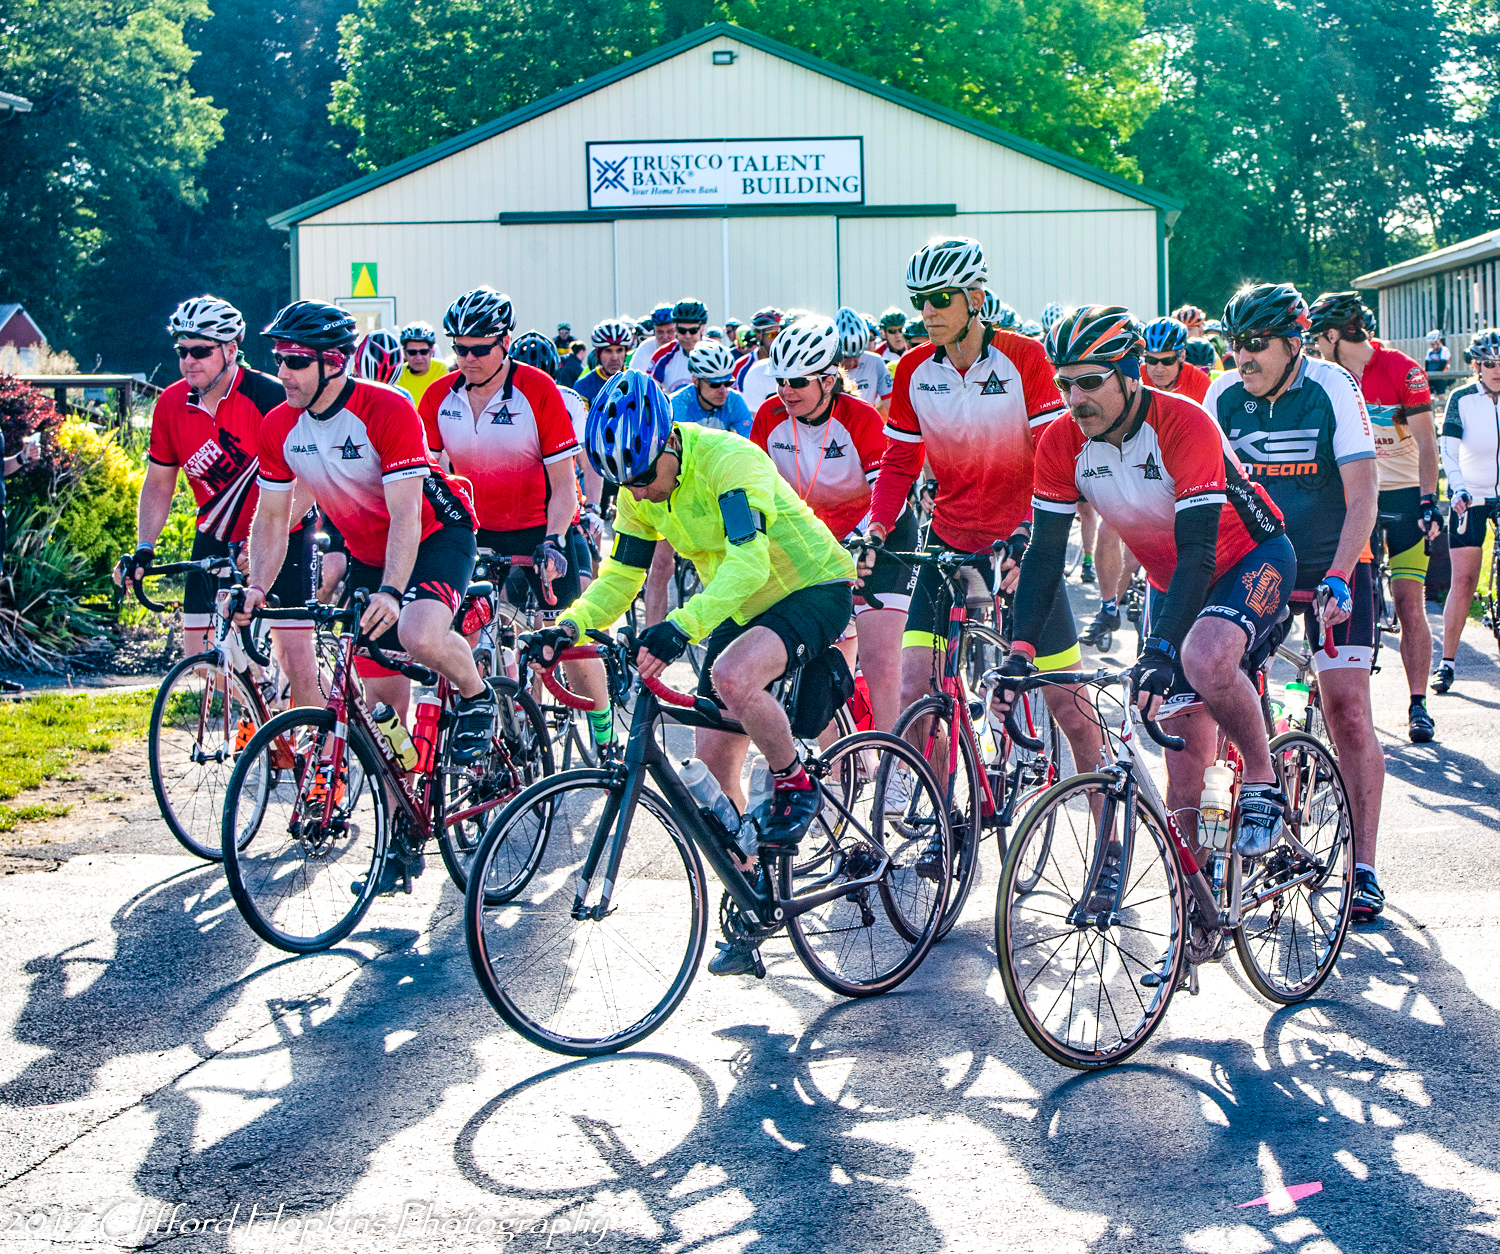 Red Riders (participants with diabetes) roll out at the 2018 Tour de Cure. Clifford Hopkins Photography